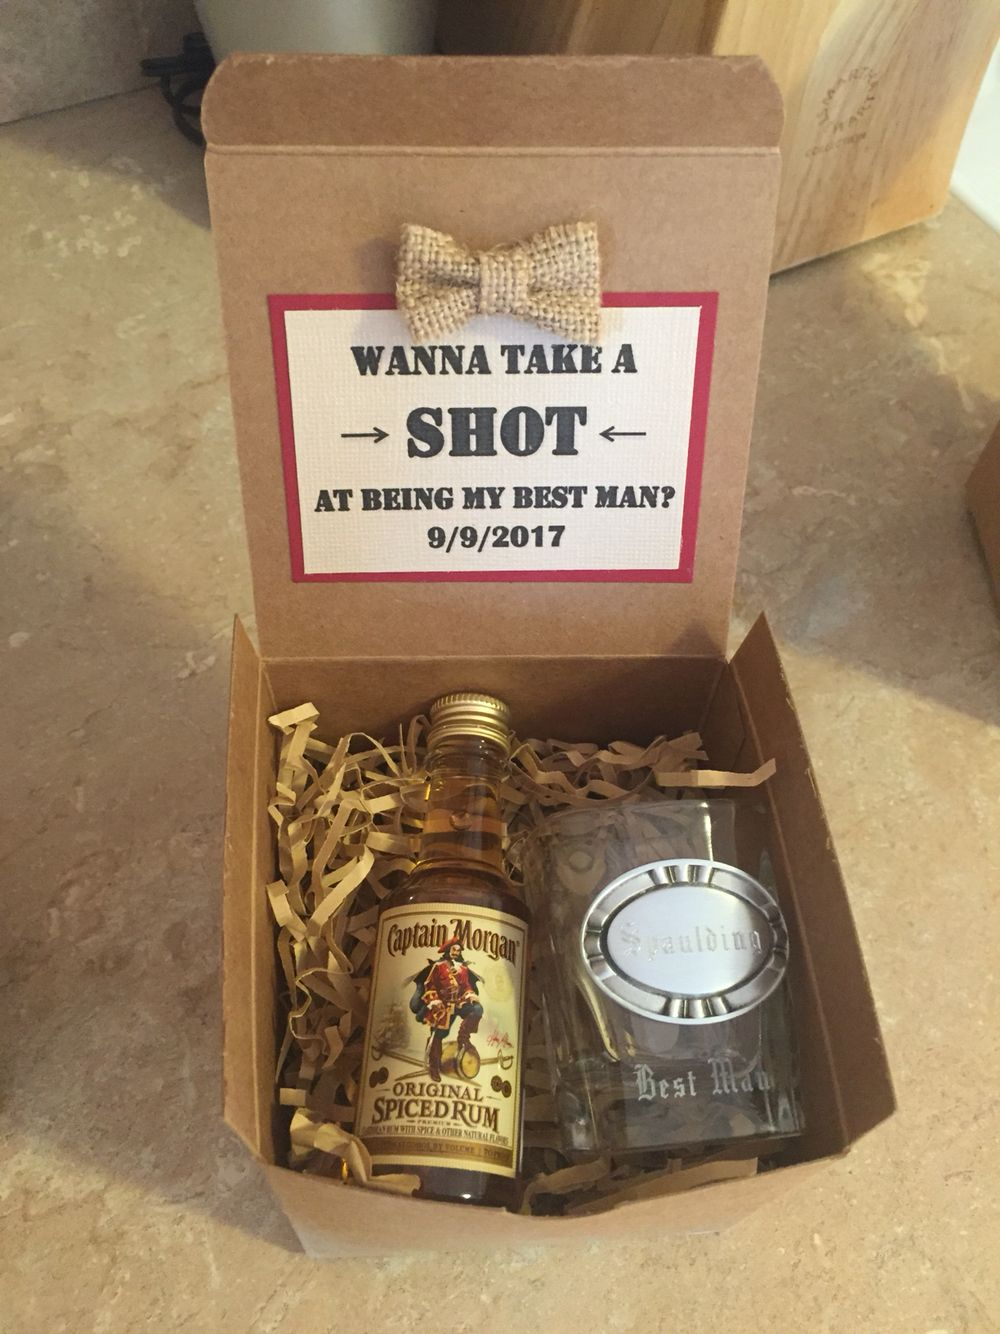 Wonderful 30 Manly Groomsmen Gifts Ideas For Your Buddies : groomsmen gift idea - medton.org